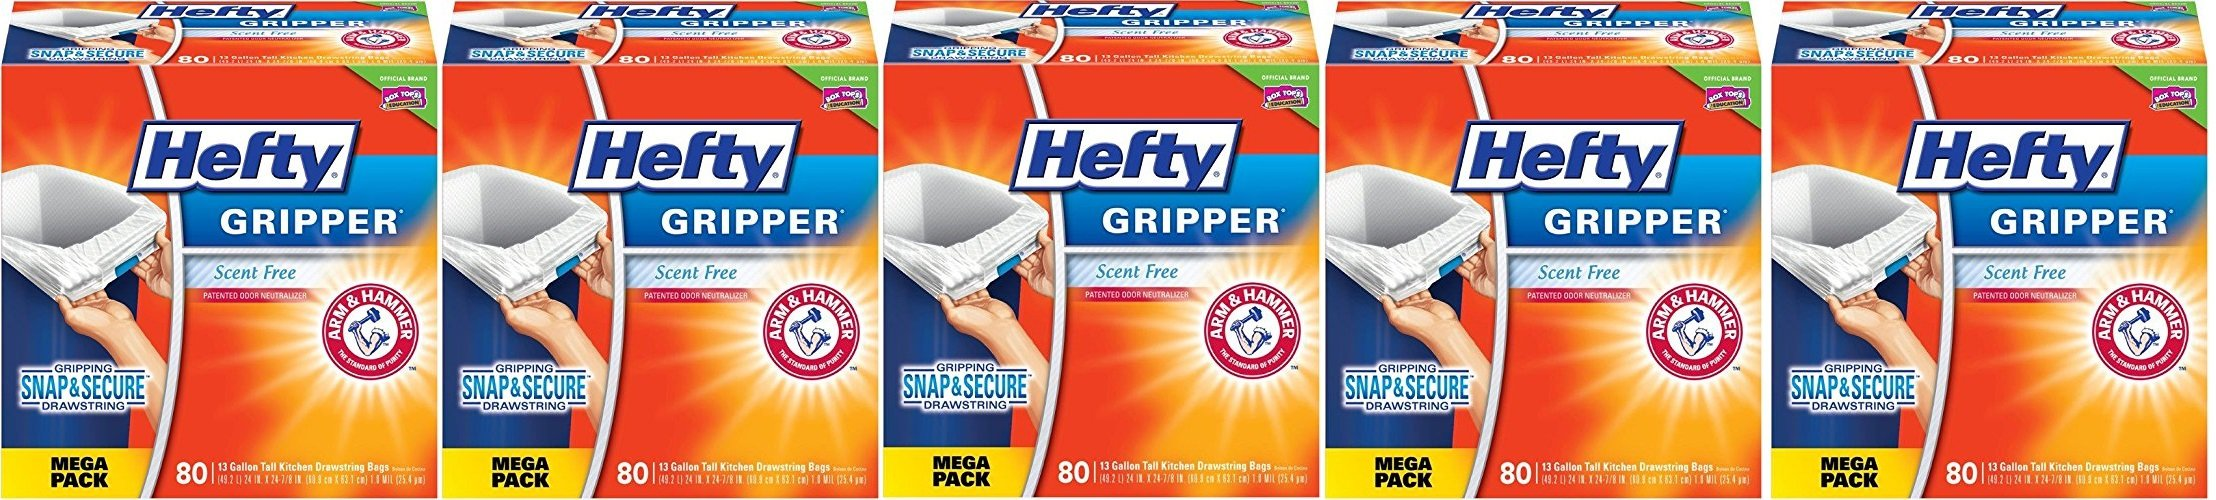 Hefty Gripper Trash Bags (Tall Kitchen Drawstring, 13 Gallon, 80 Count), UemOFT 5Pack 80 Count